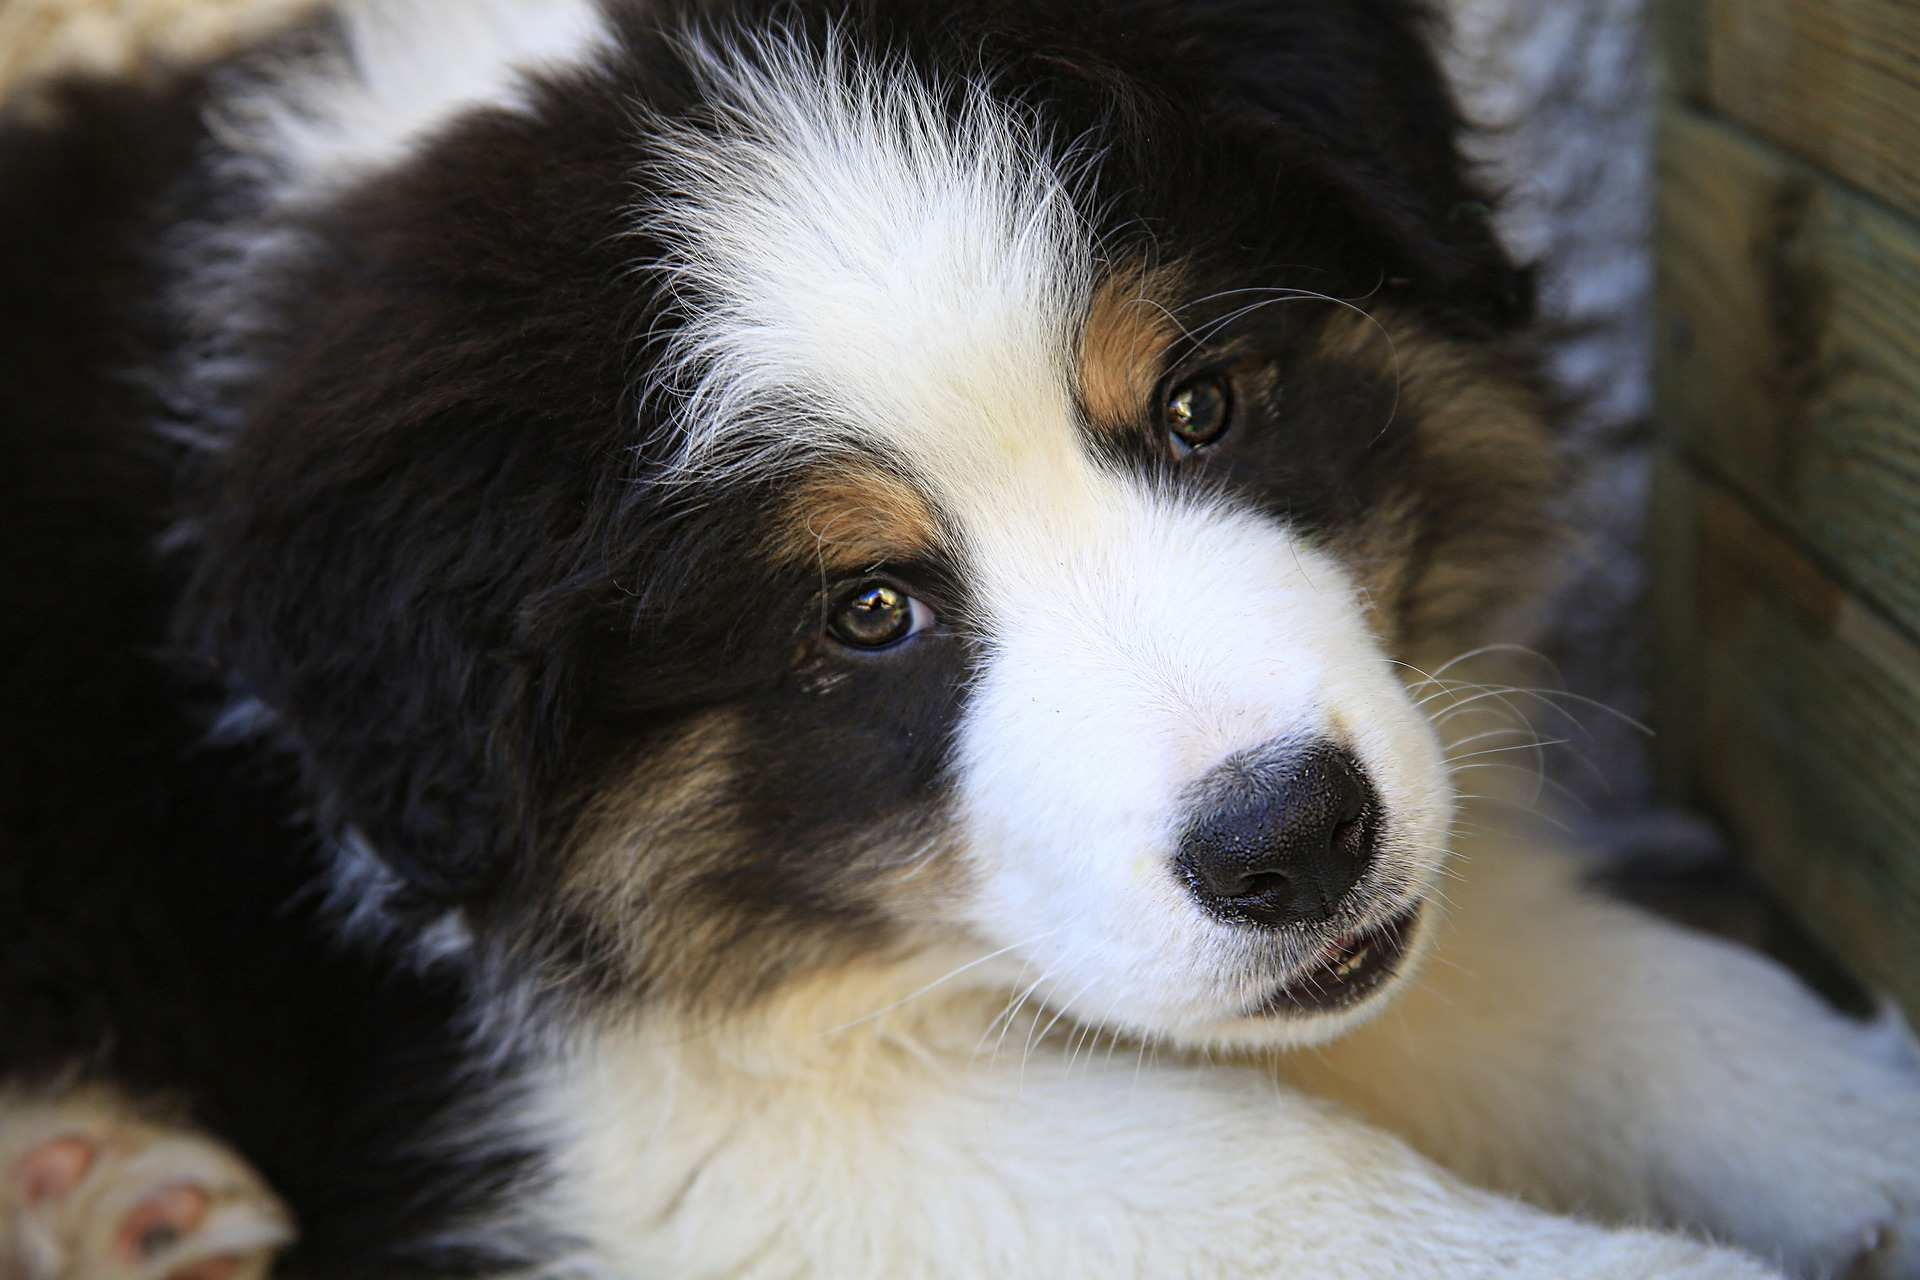 A close-up of a border collie puppy.